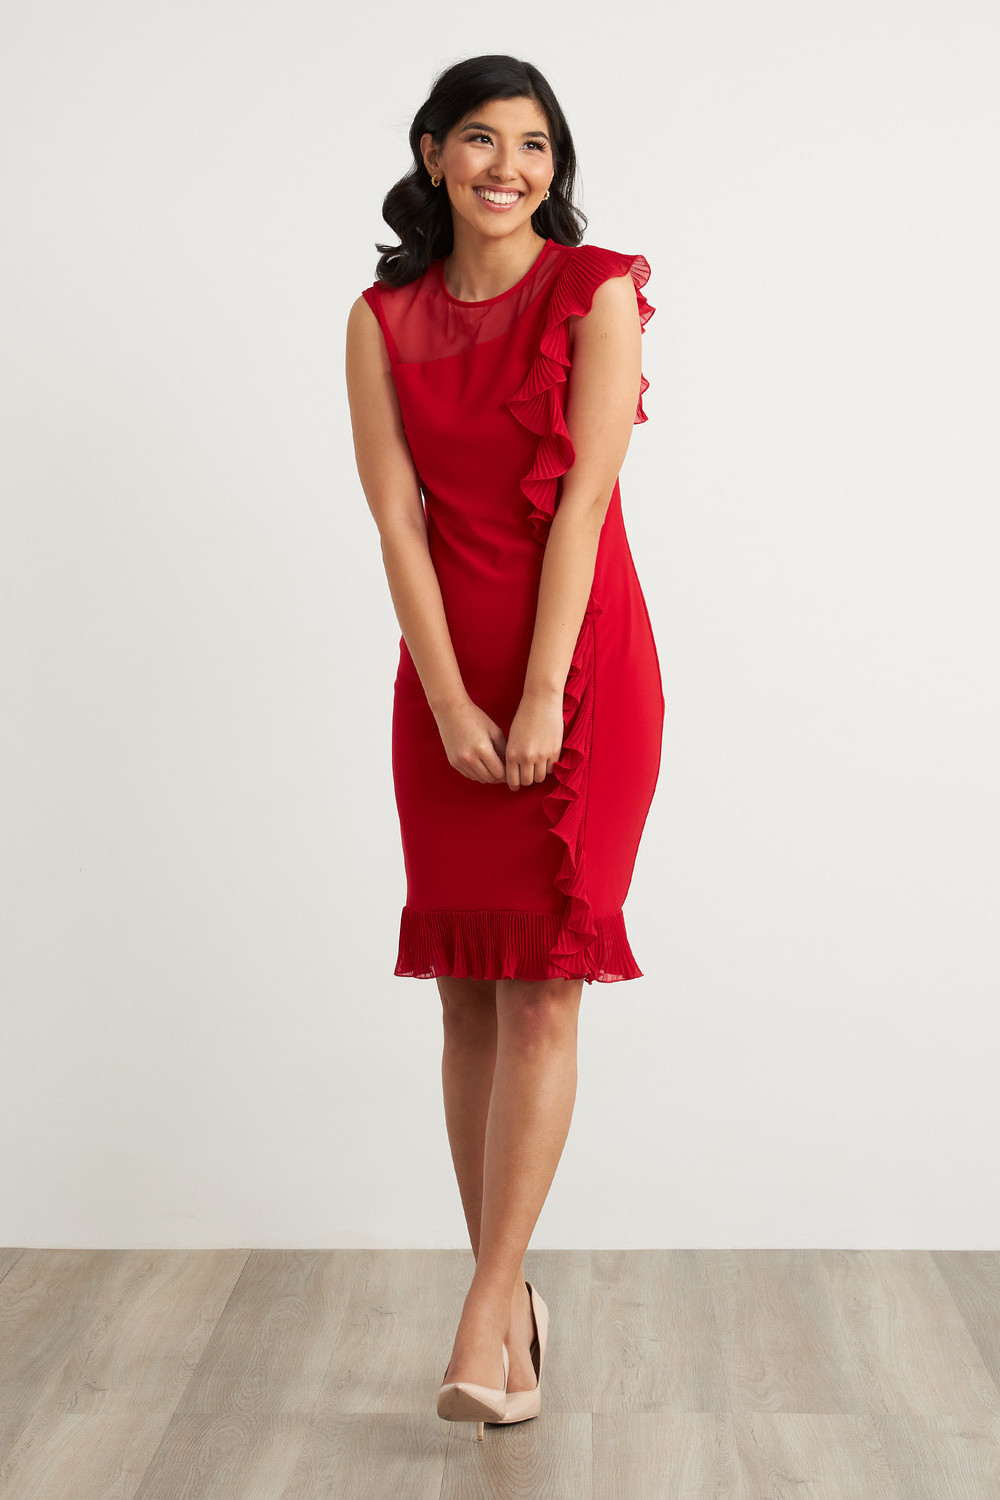 Joseph Ribkoff Robes Rouge A Levres 173 Style 211476